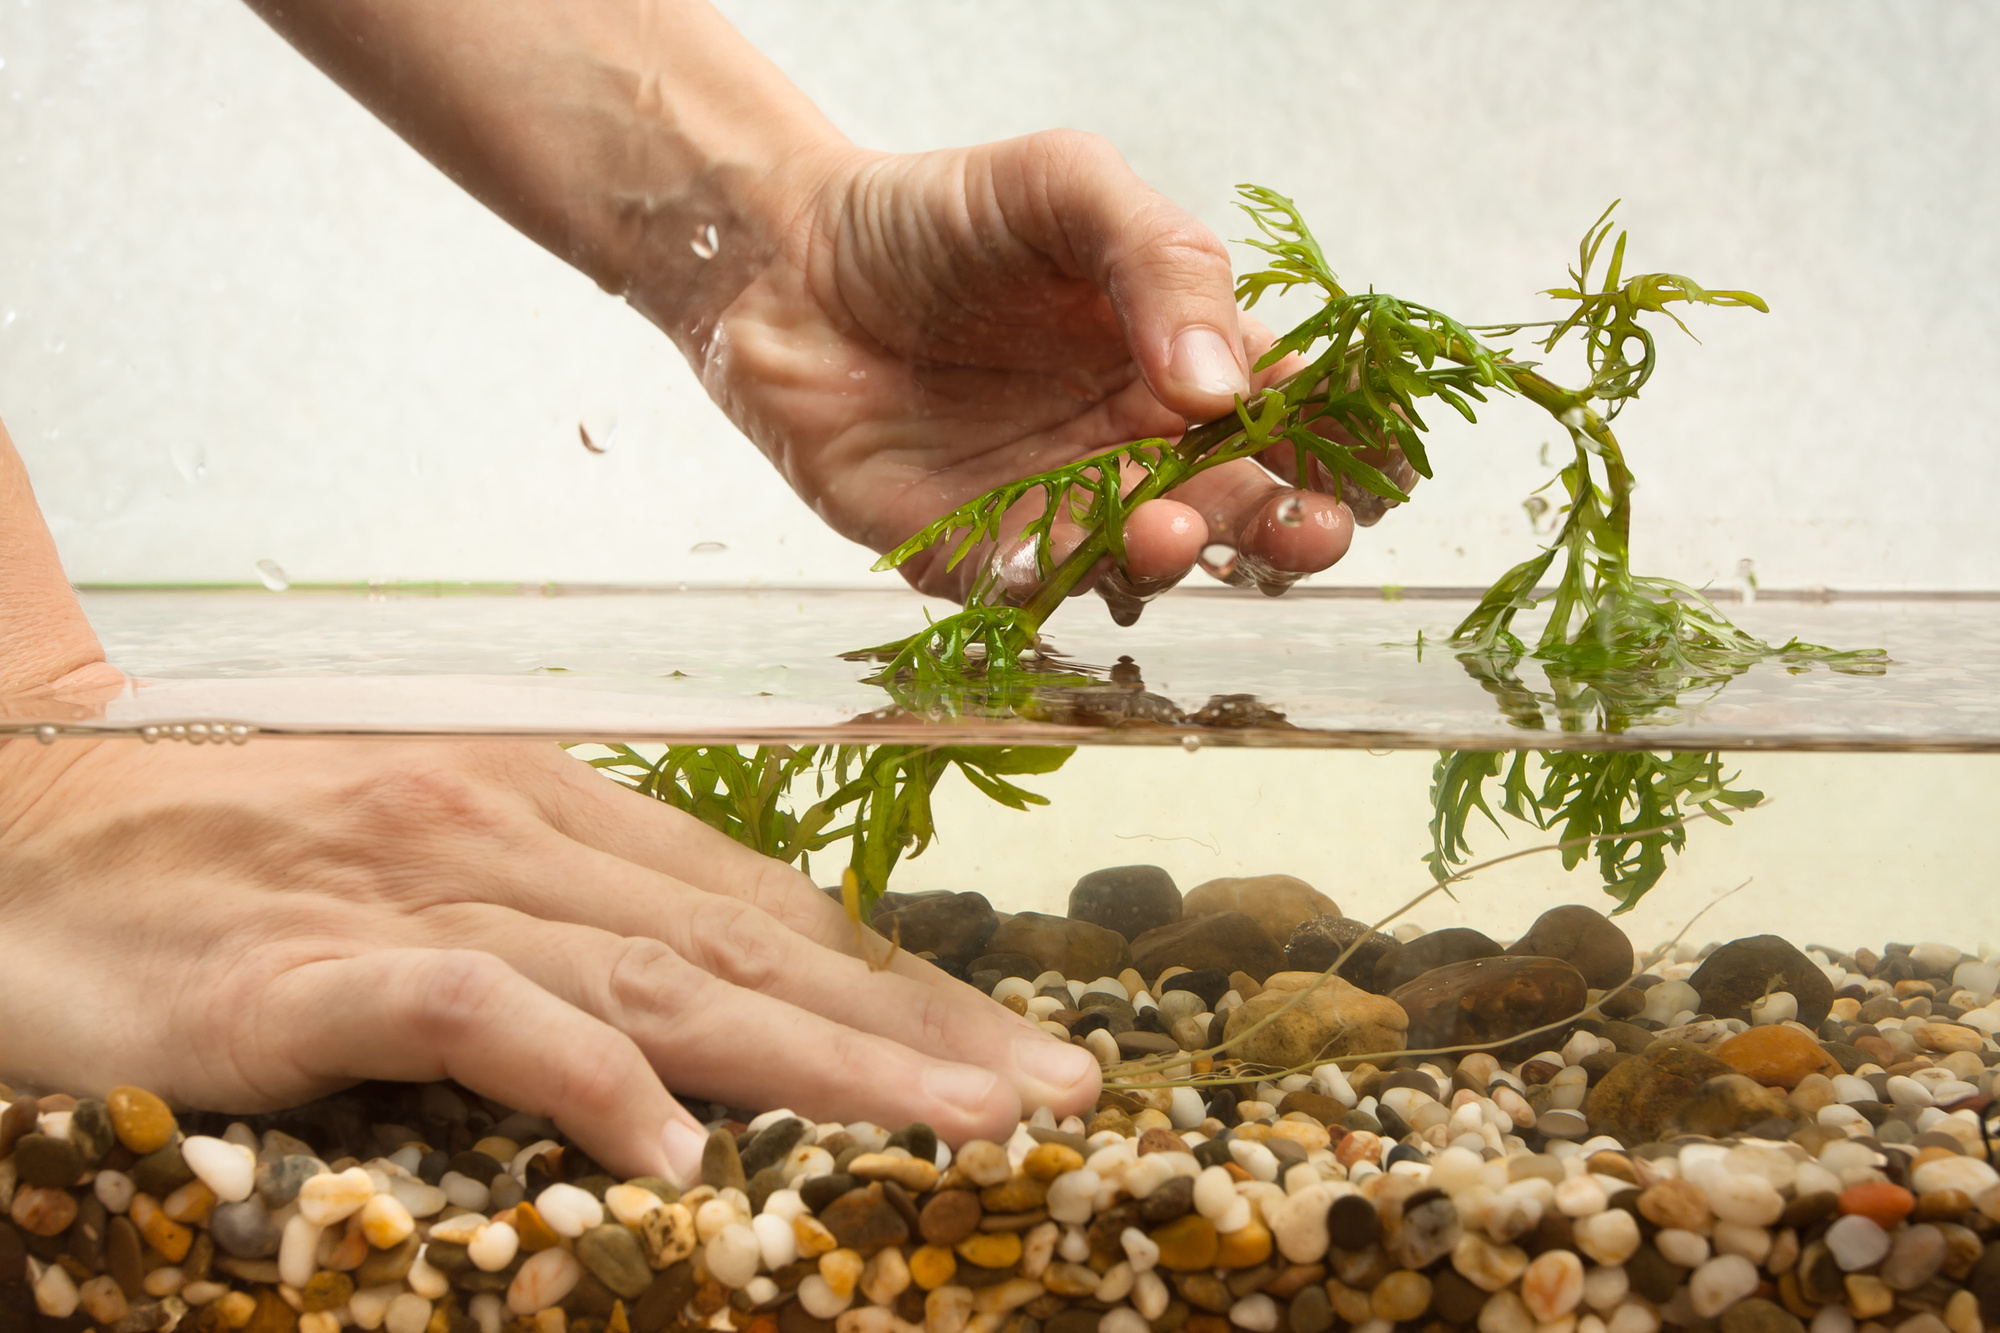 How to Choose the Best Aquarium Substrate for Your Planted Tank